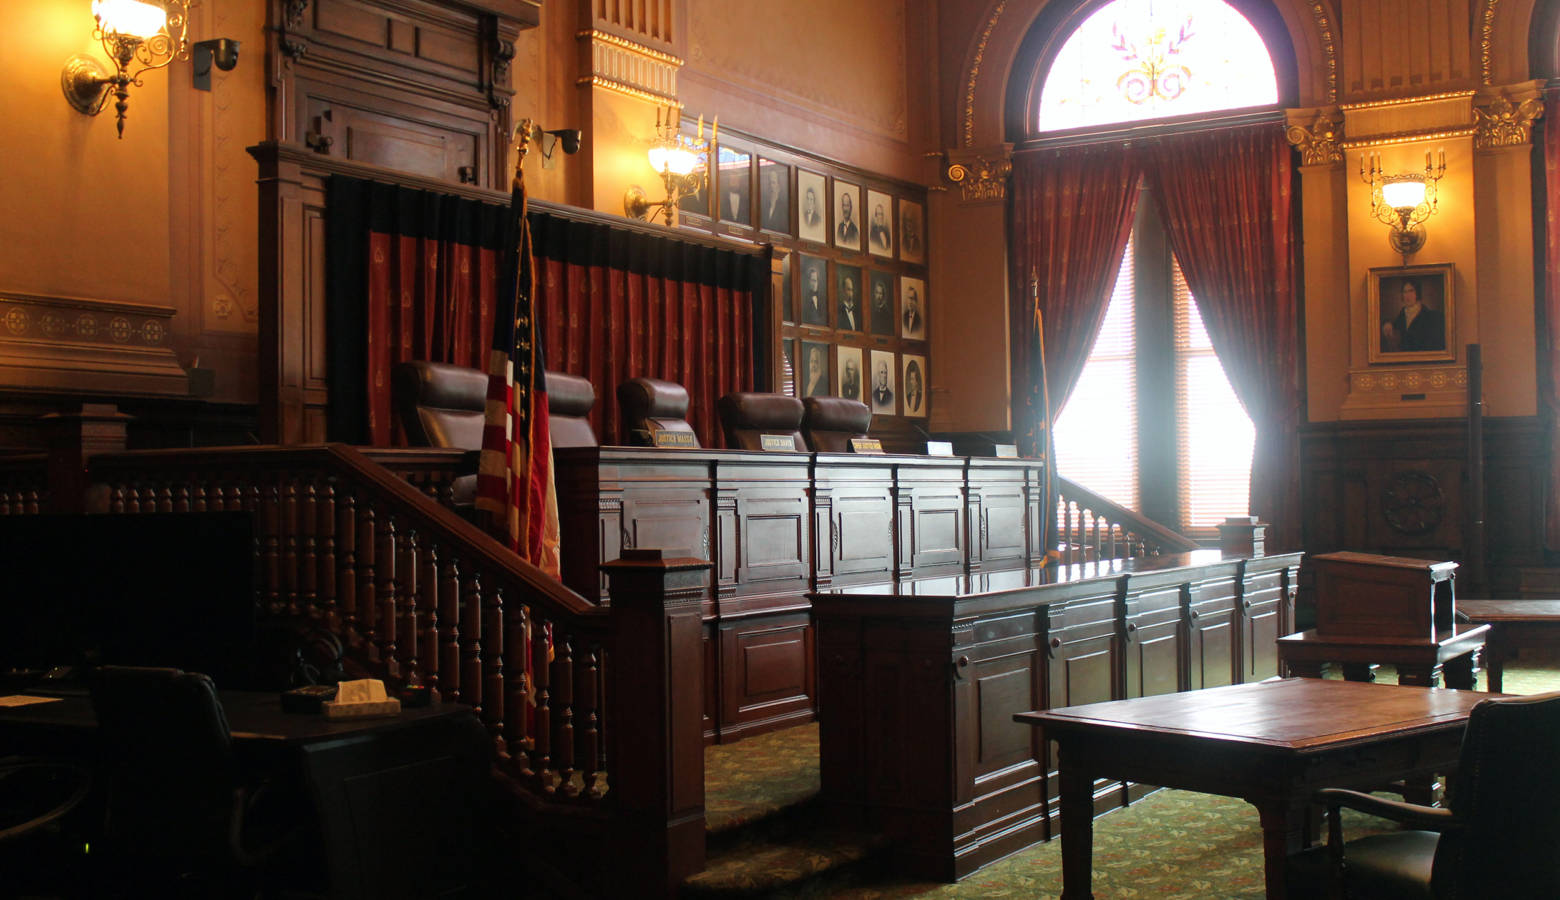 The Indiana Supreme Court chamber. (FILE PHOTO: Lauren Chapman/IPB News)